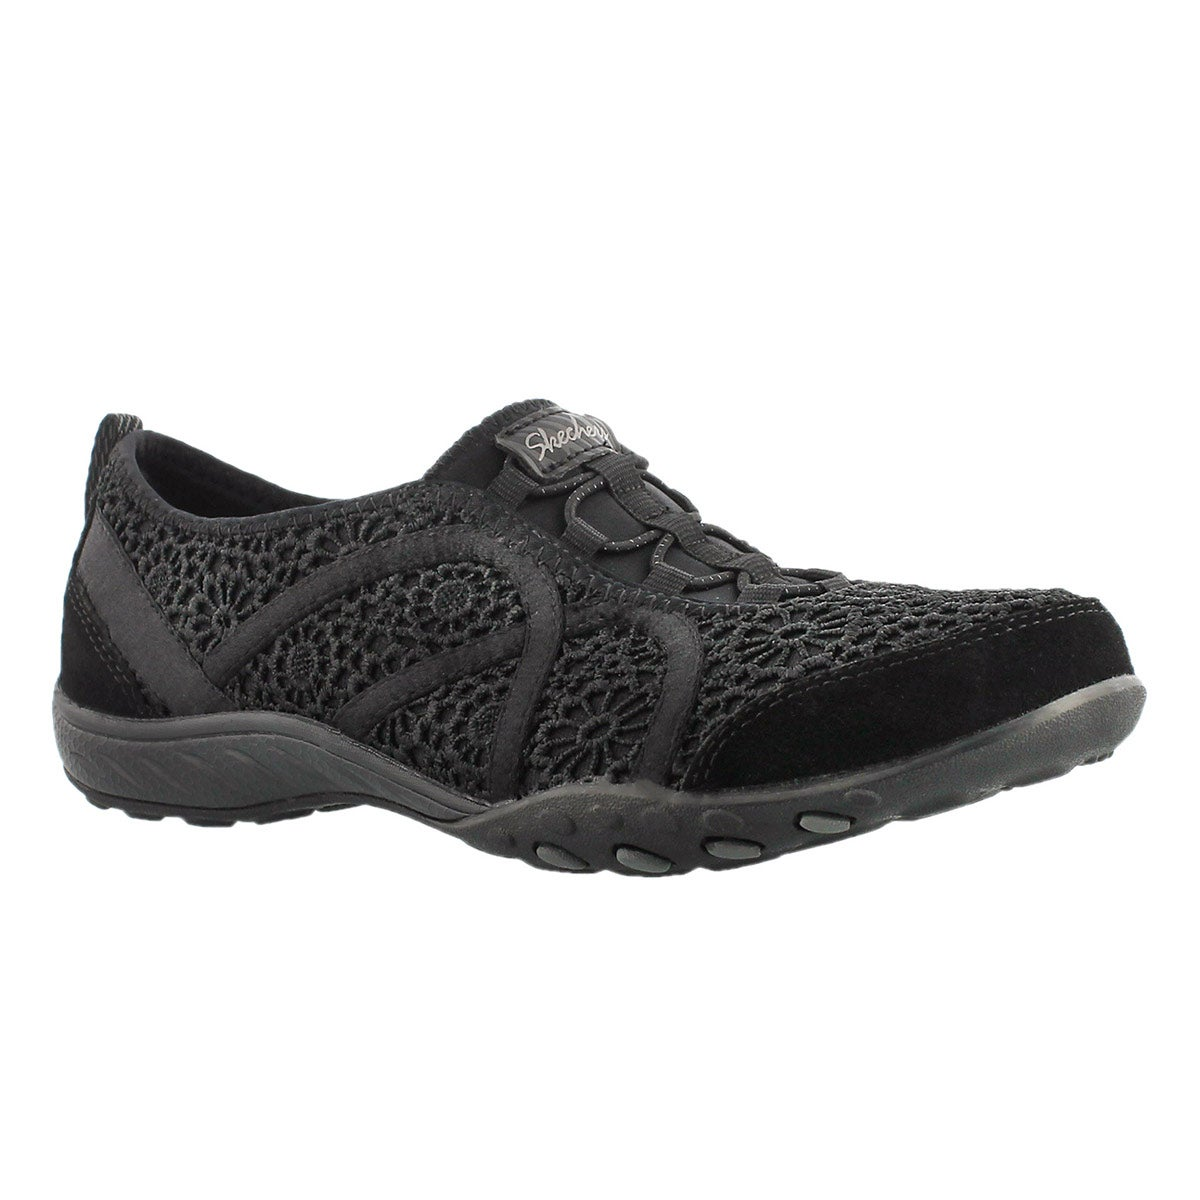 Lds Meadows black crochet bungee sneaker